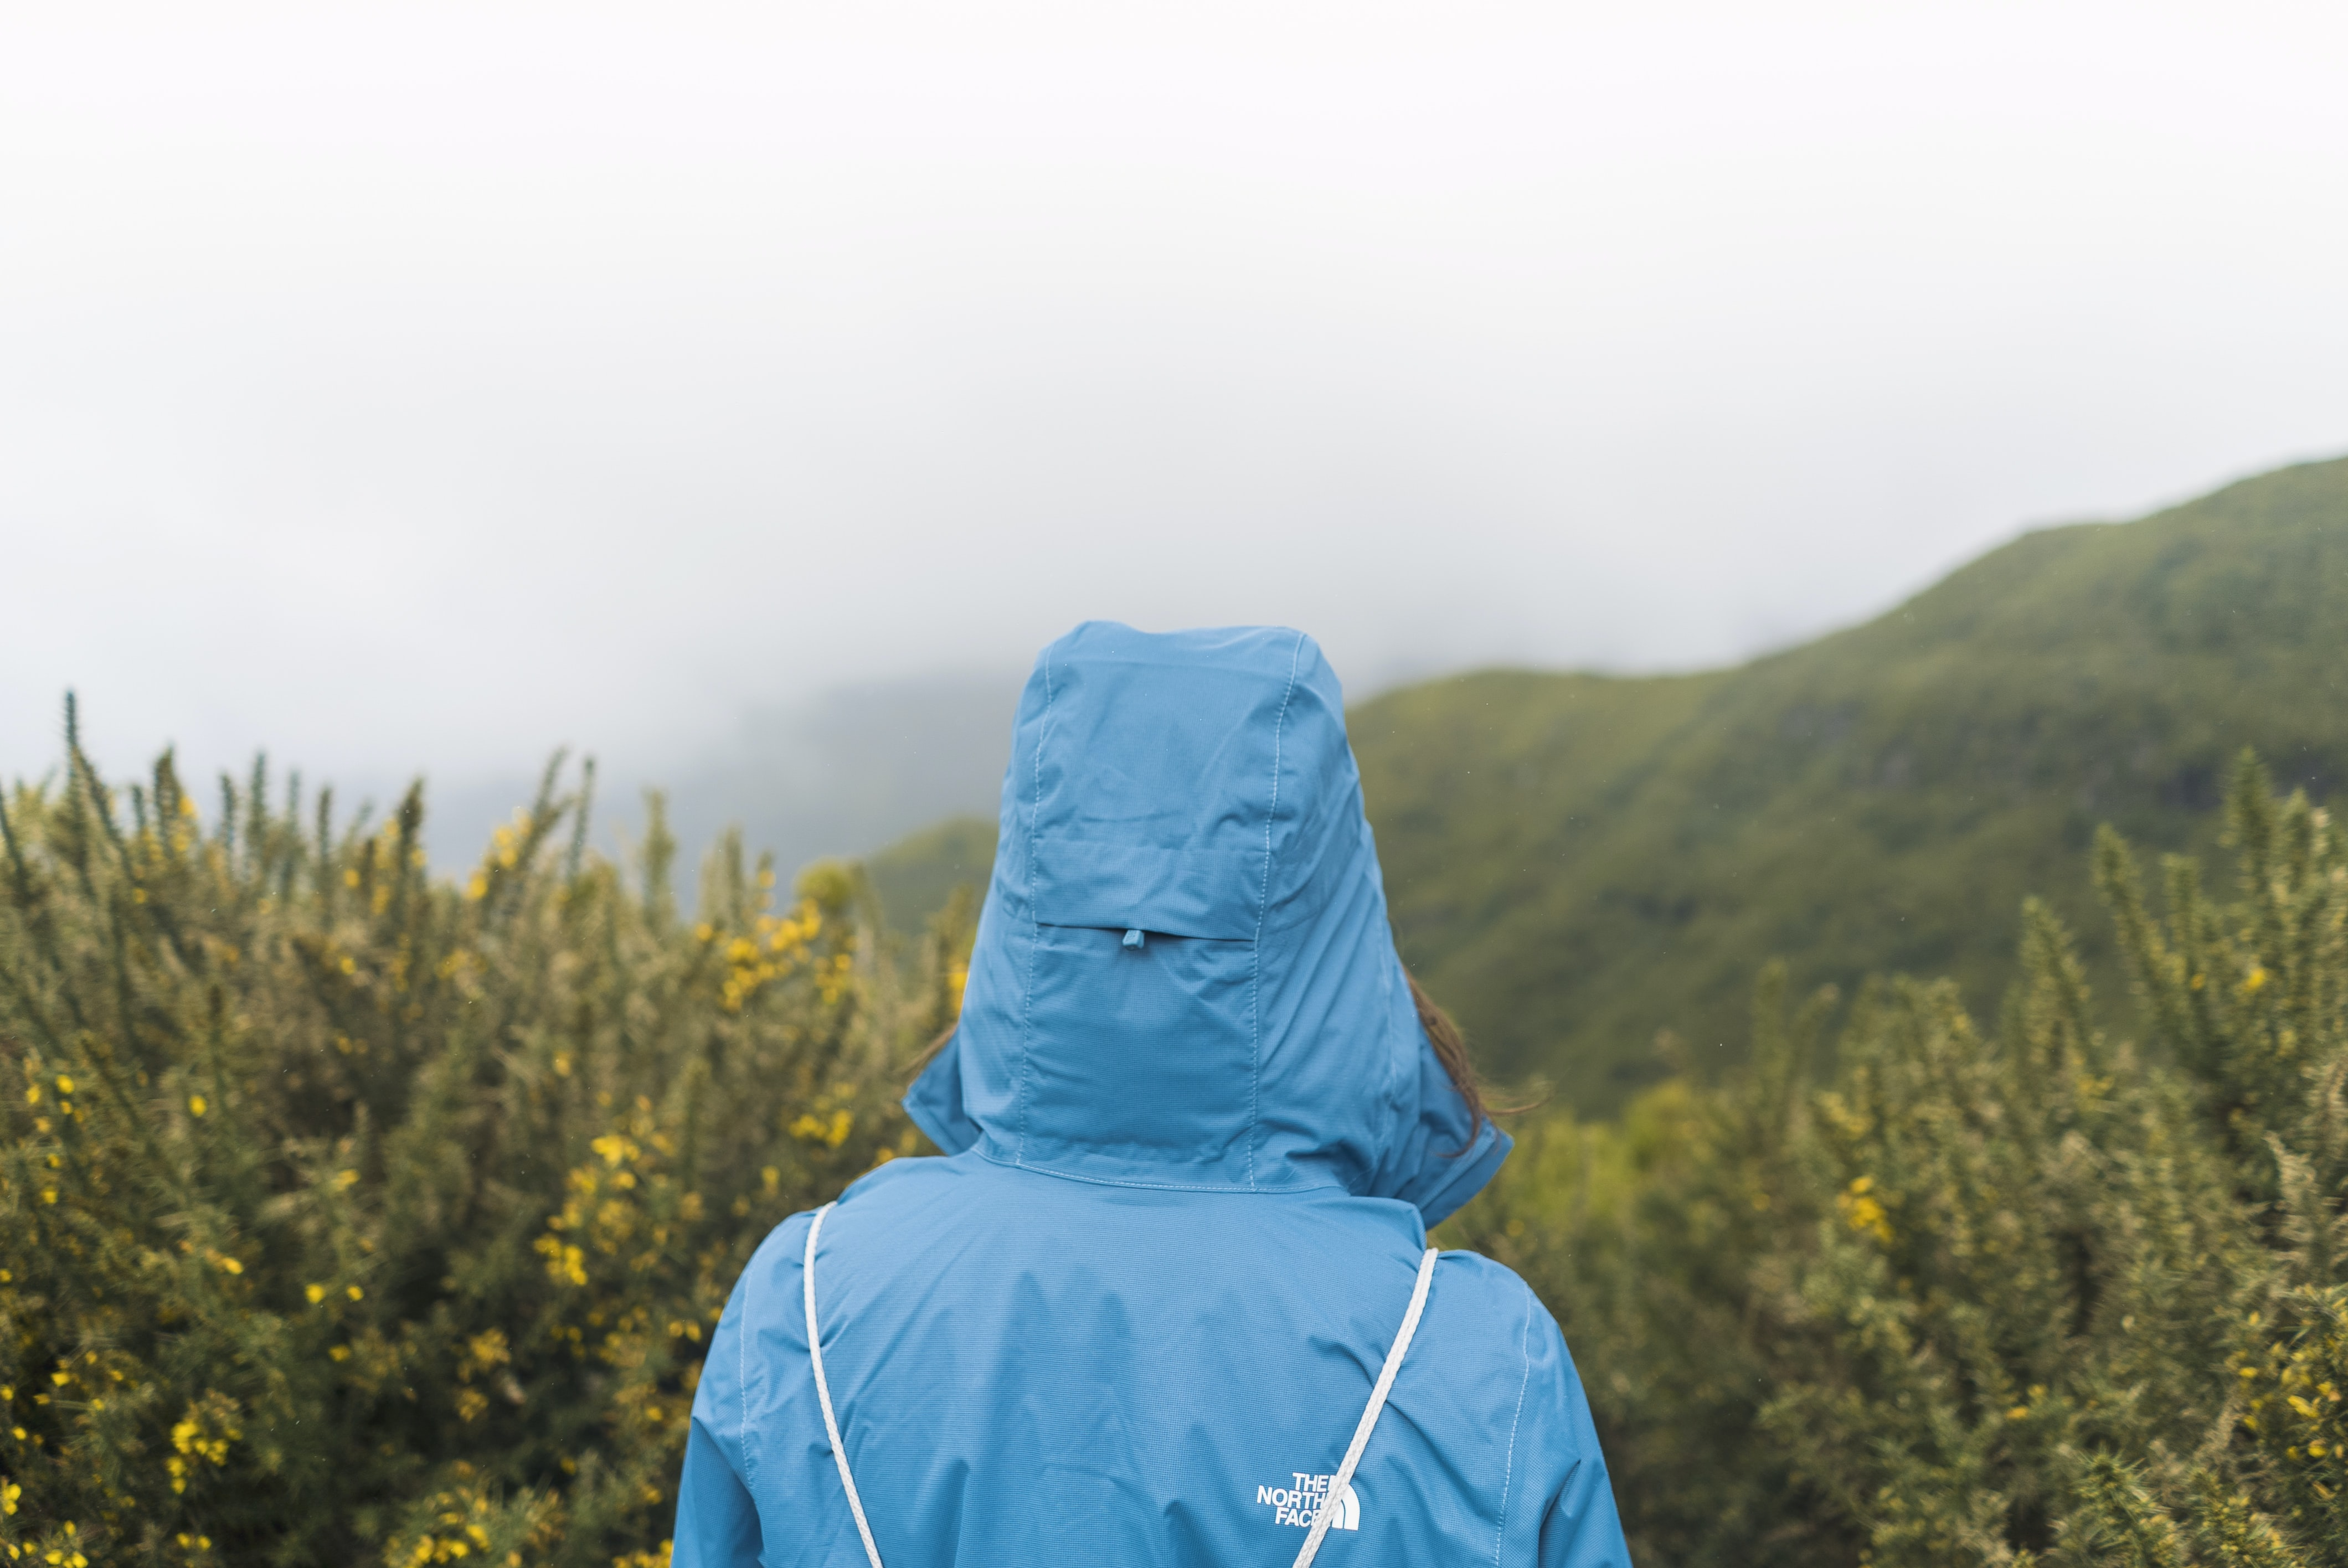 person in blue hoodie staring at green field